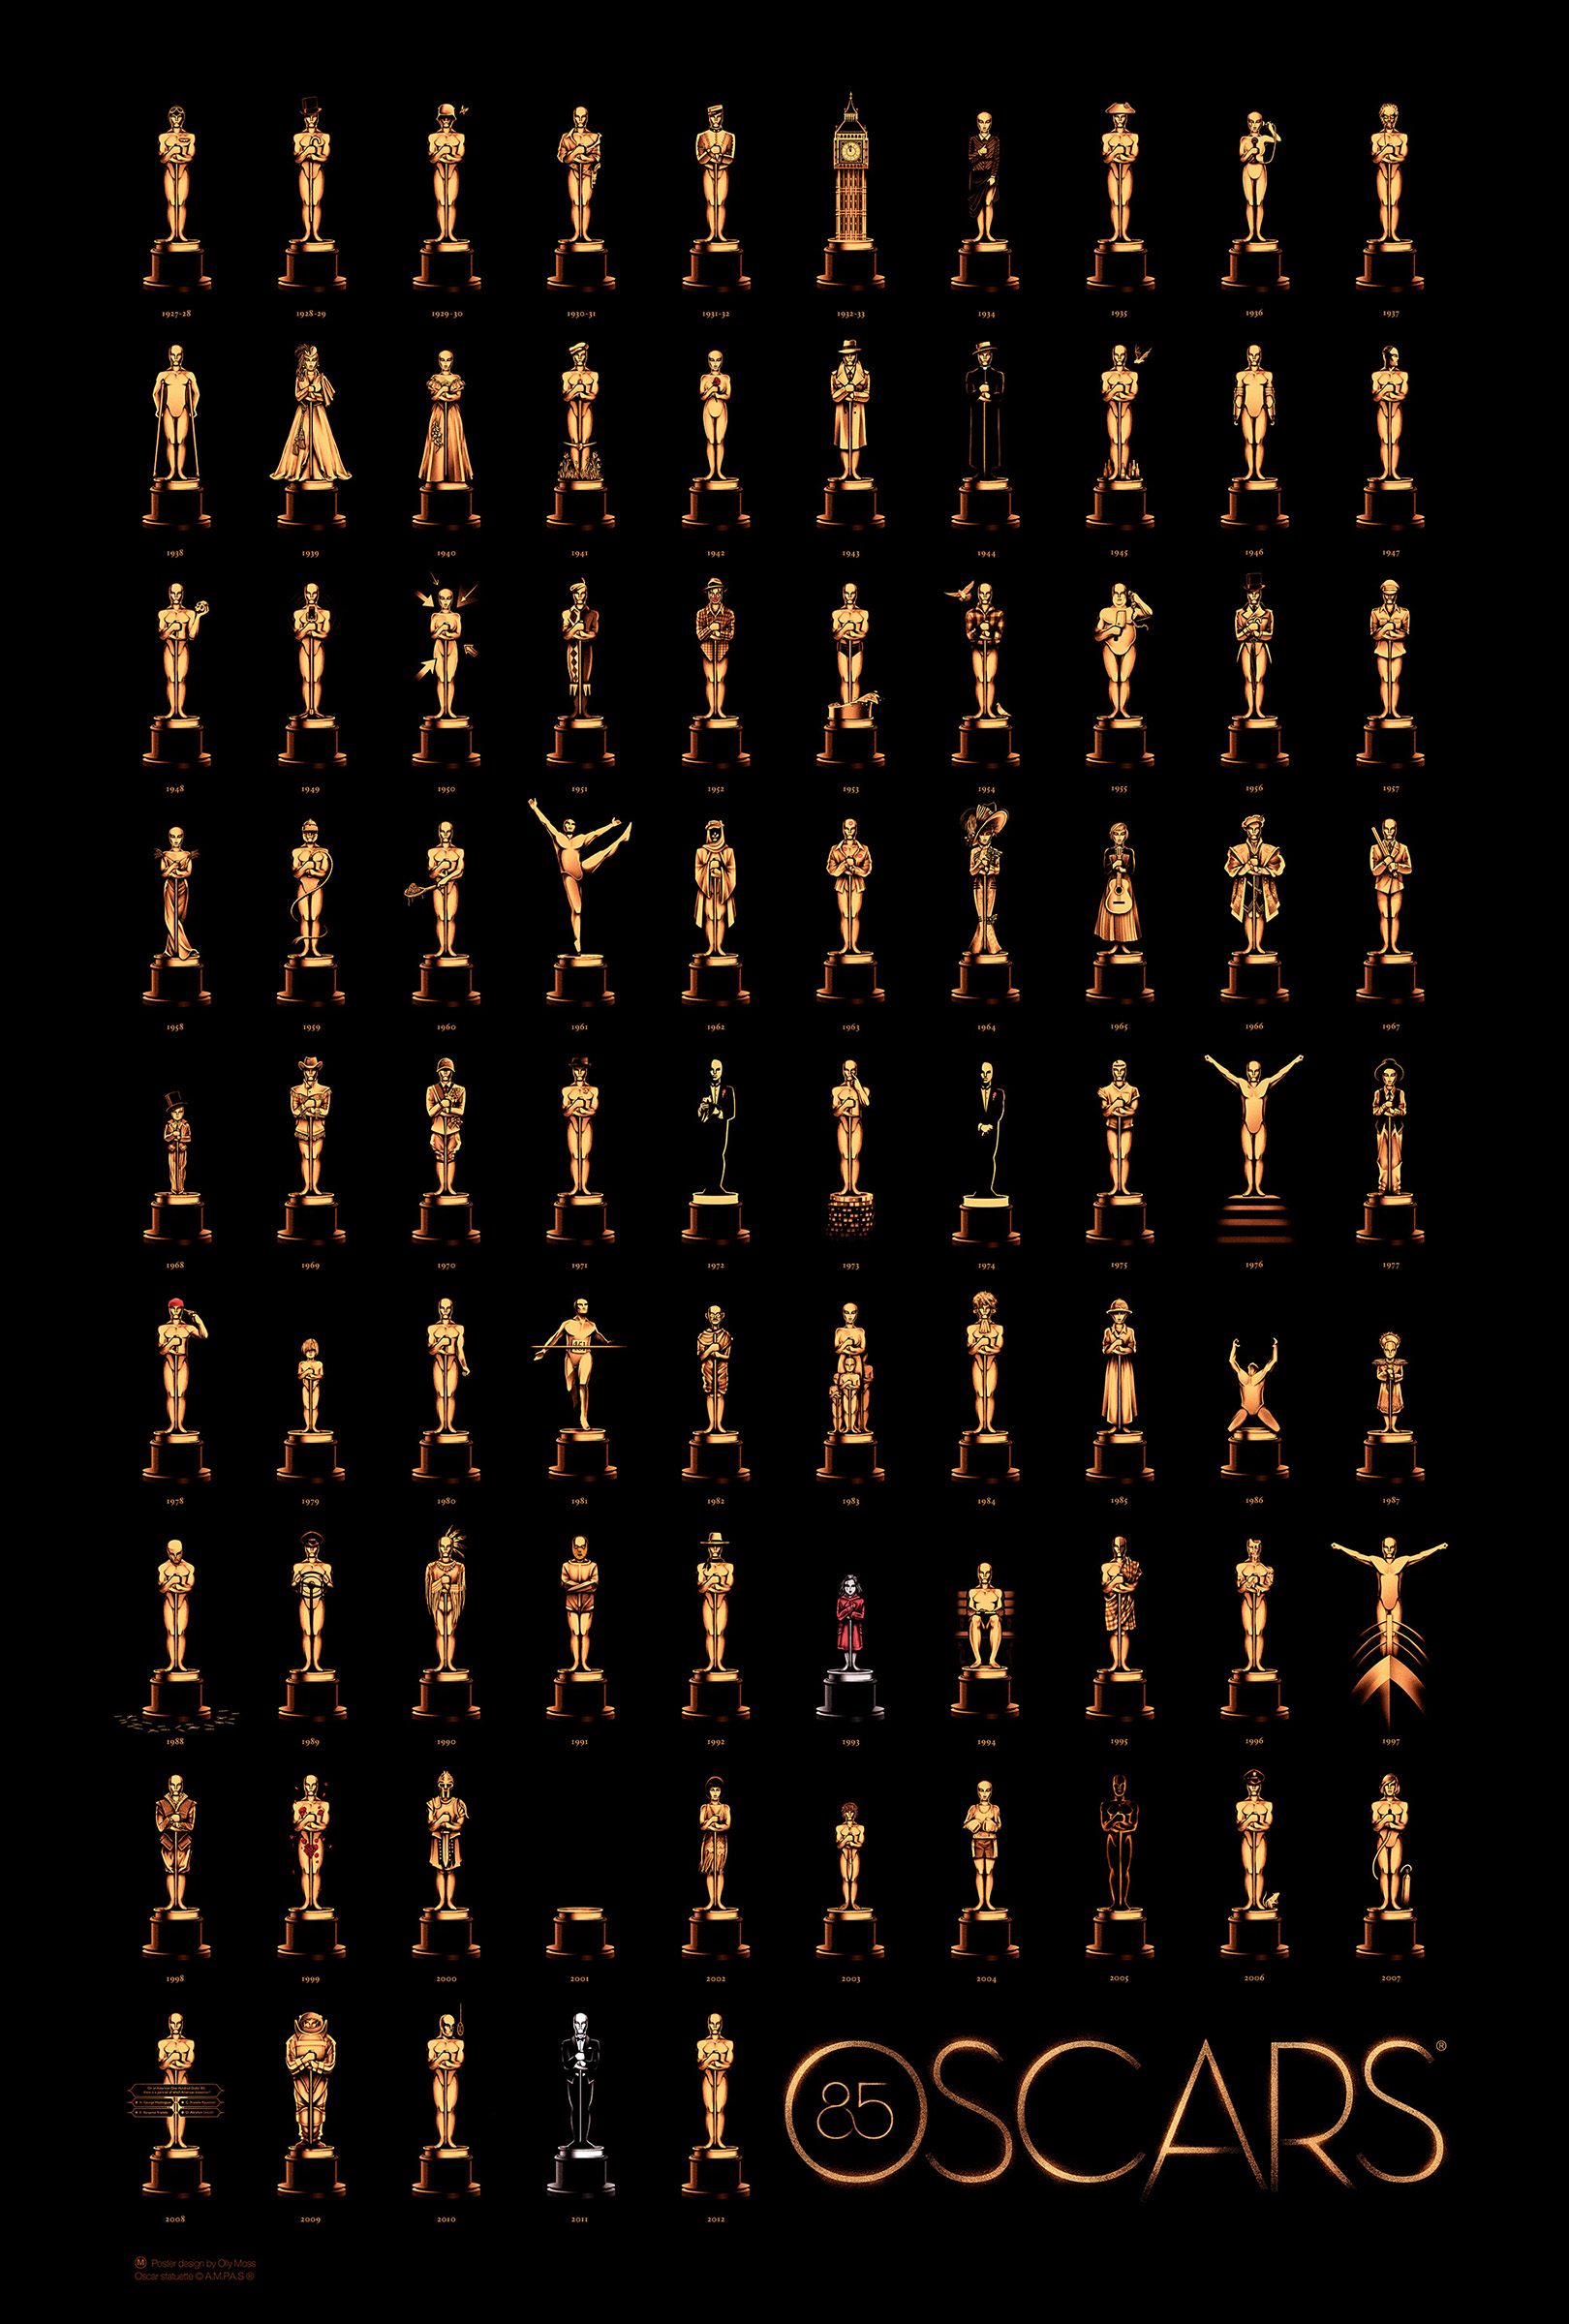 Charlie Hebdo Prophet Muhammad Cartoon  n 2395143 together with Oscar God Of The Academy Awards further Jeremy Meeks Hot Convict Old Mugshots n 5521895 as well 2015 05 01 archive in addition A Piece Of Cinematic History. on oscar award statue 1929